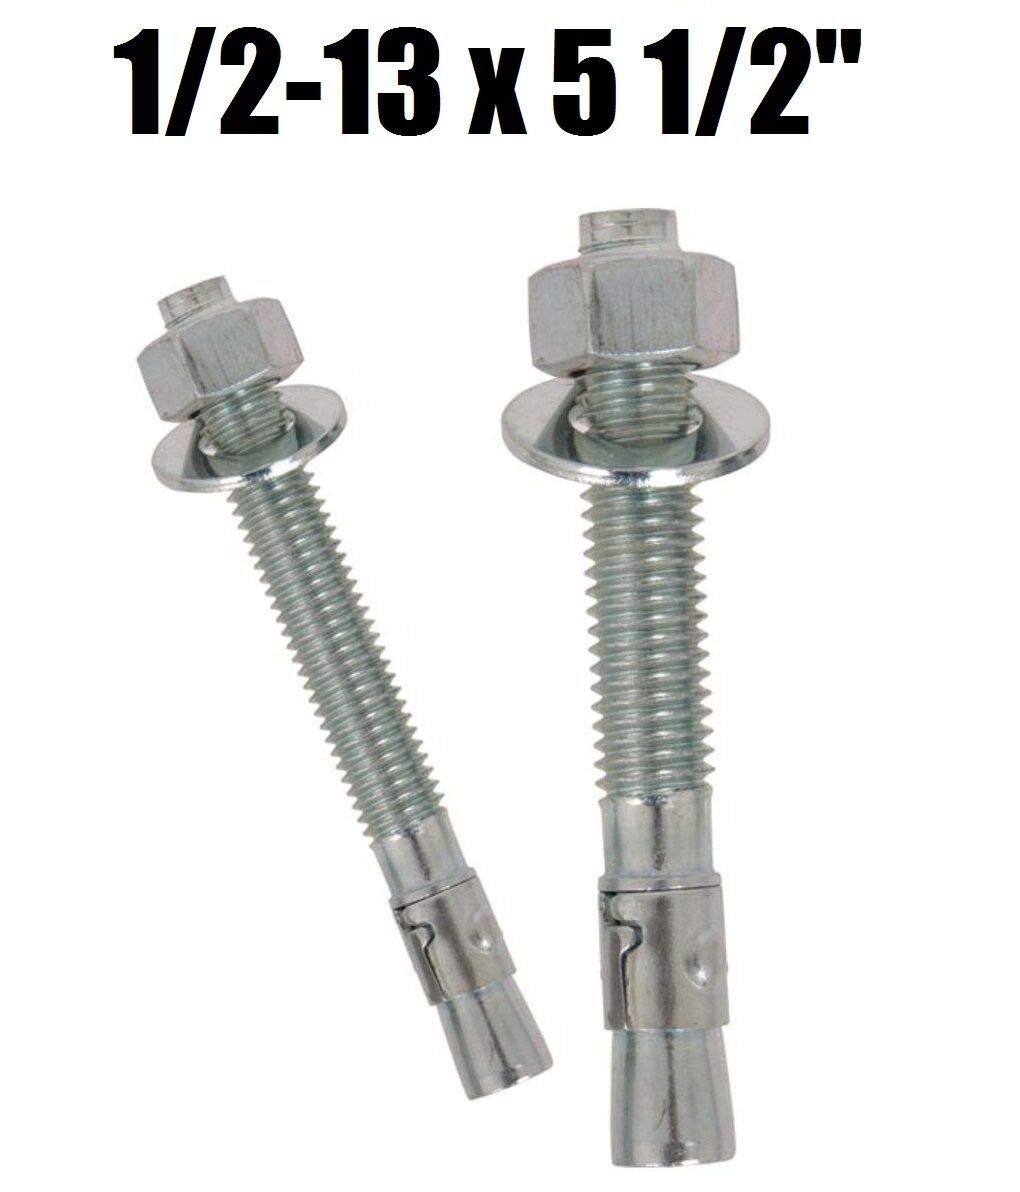 Concrete Wedge Anchor Zinc Plated 1//2-13 x 5-1//2 Qty 100